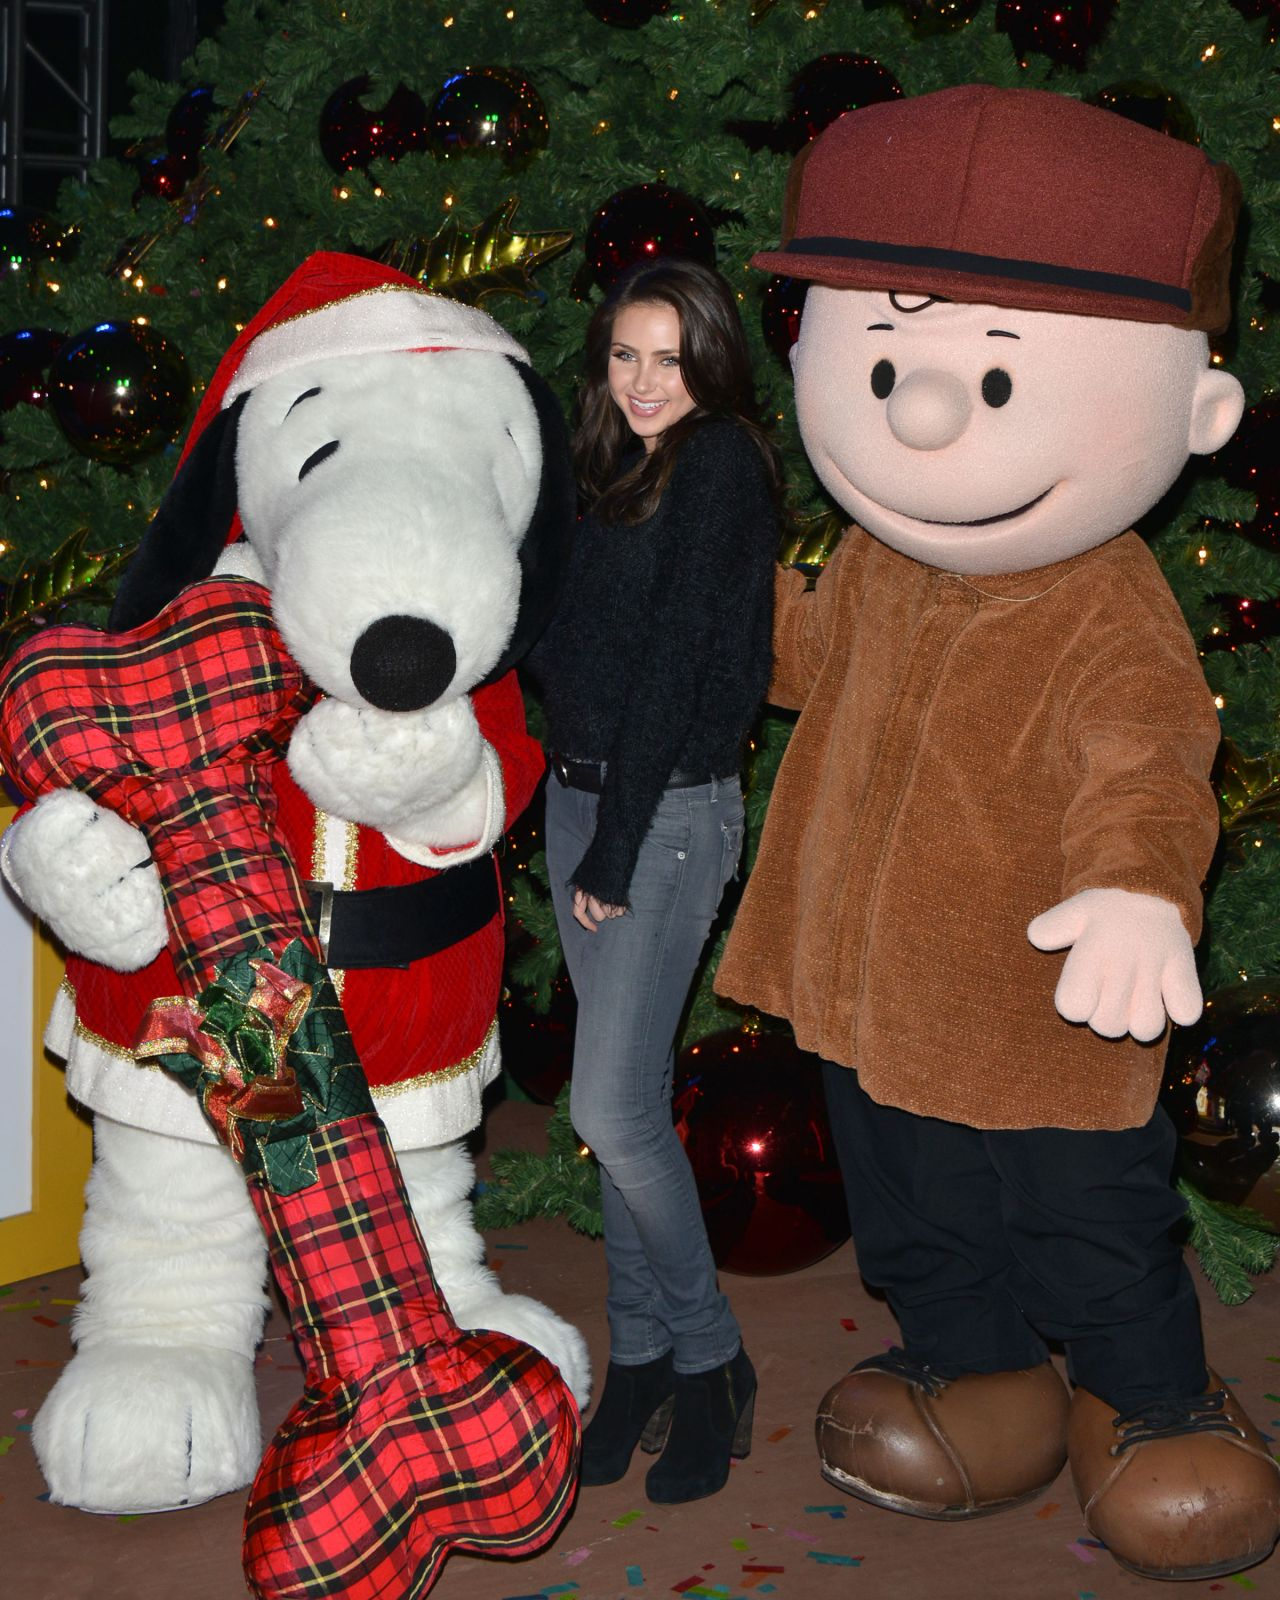 Lighting Of Christmas Tree 2014: Knott's Merry Farm Holiday Tree Lighting In